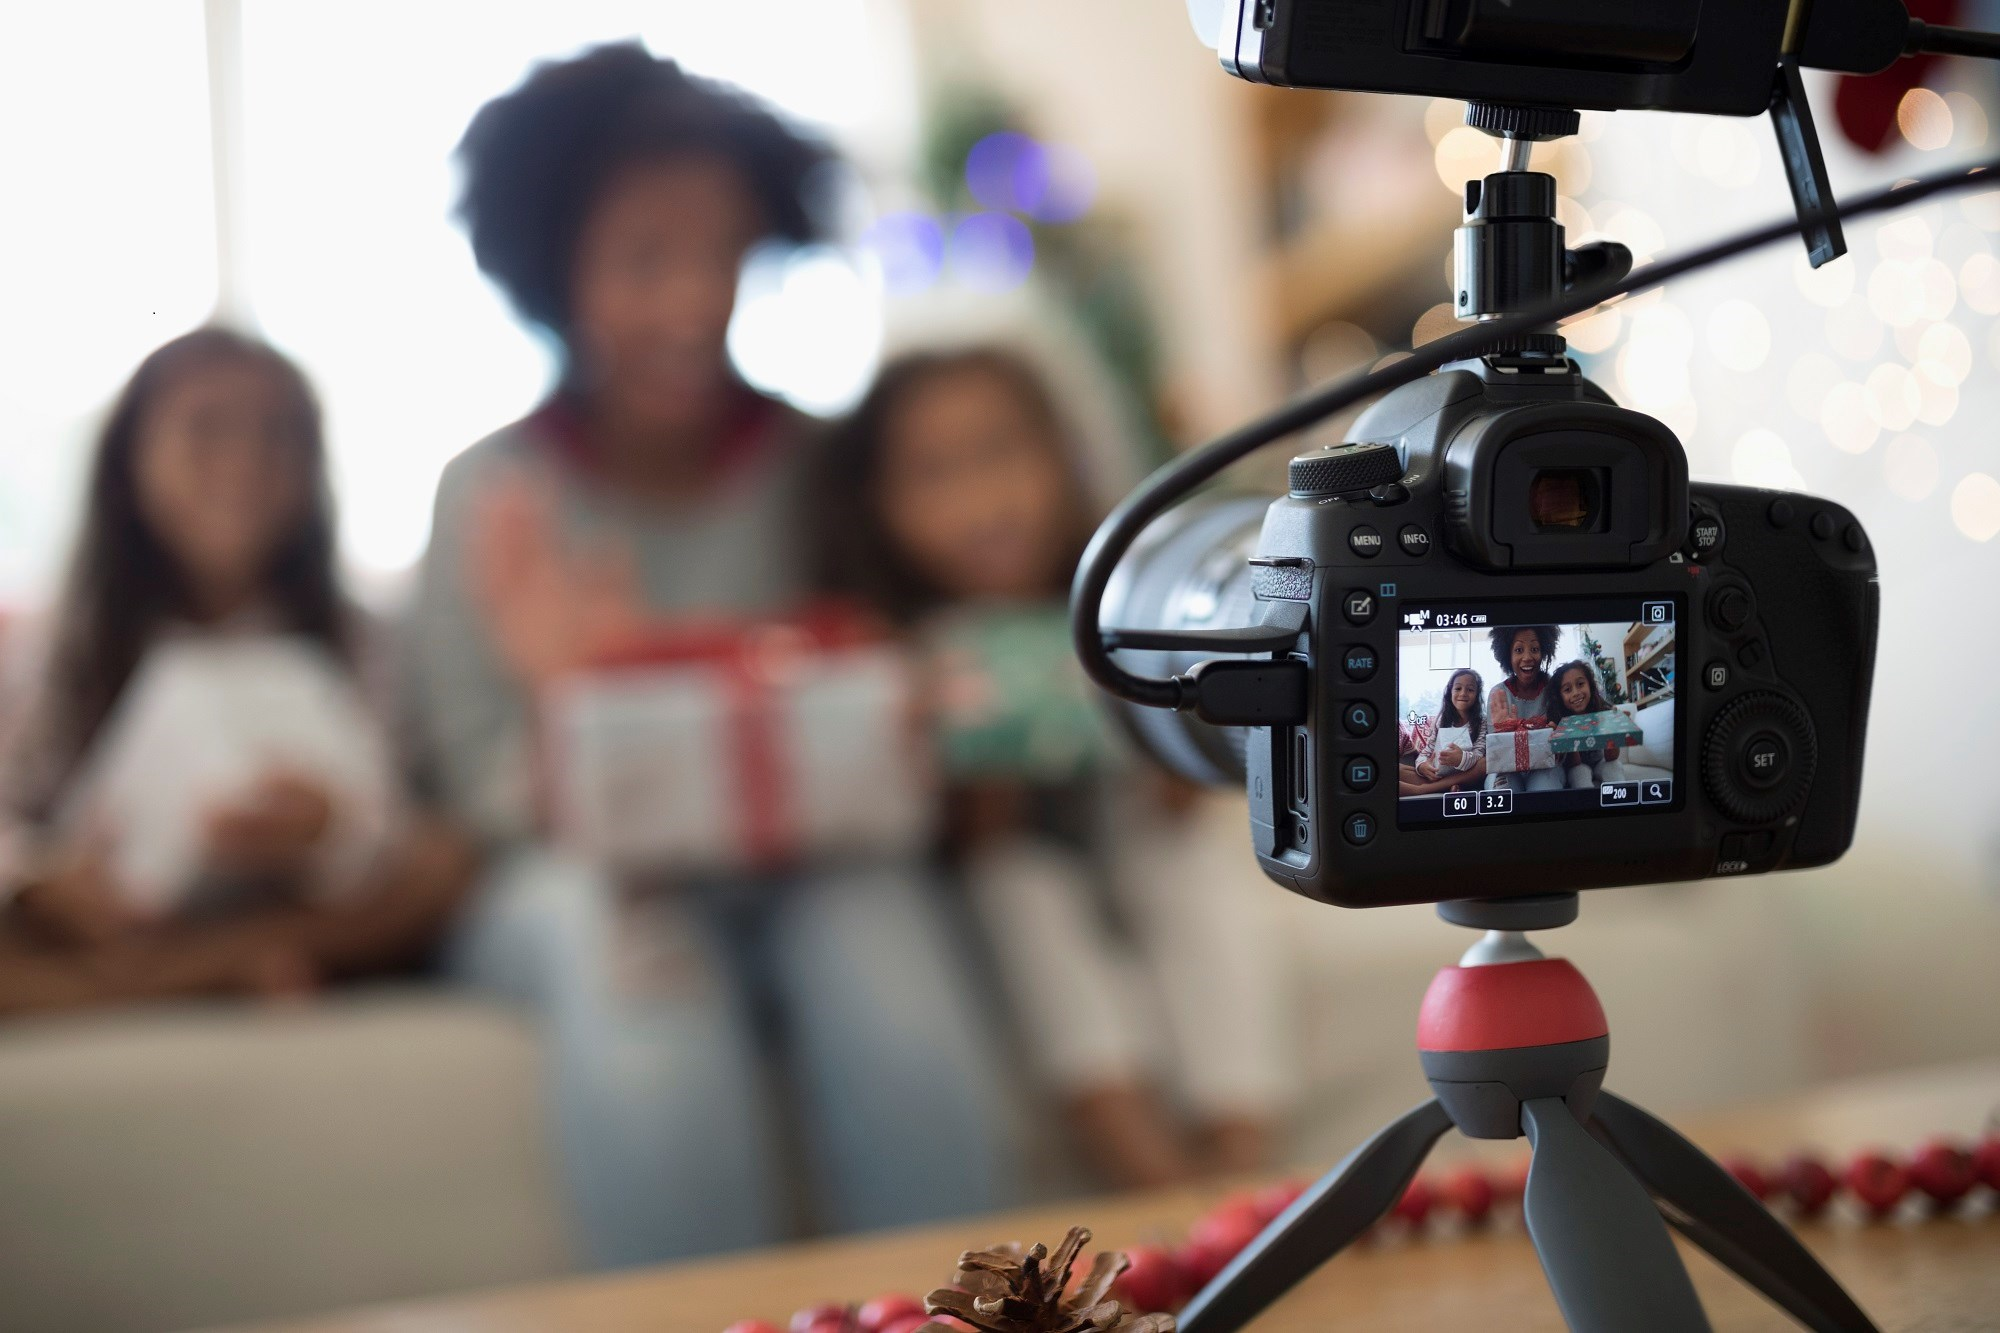 The current study aims to test the effectiveness of a video-feedback intervention in increasing caregiver sensitivity to foster children.